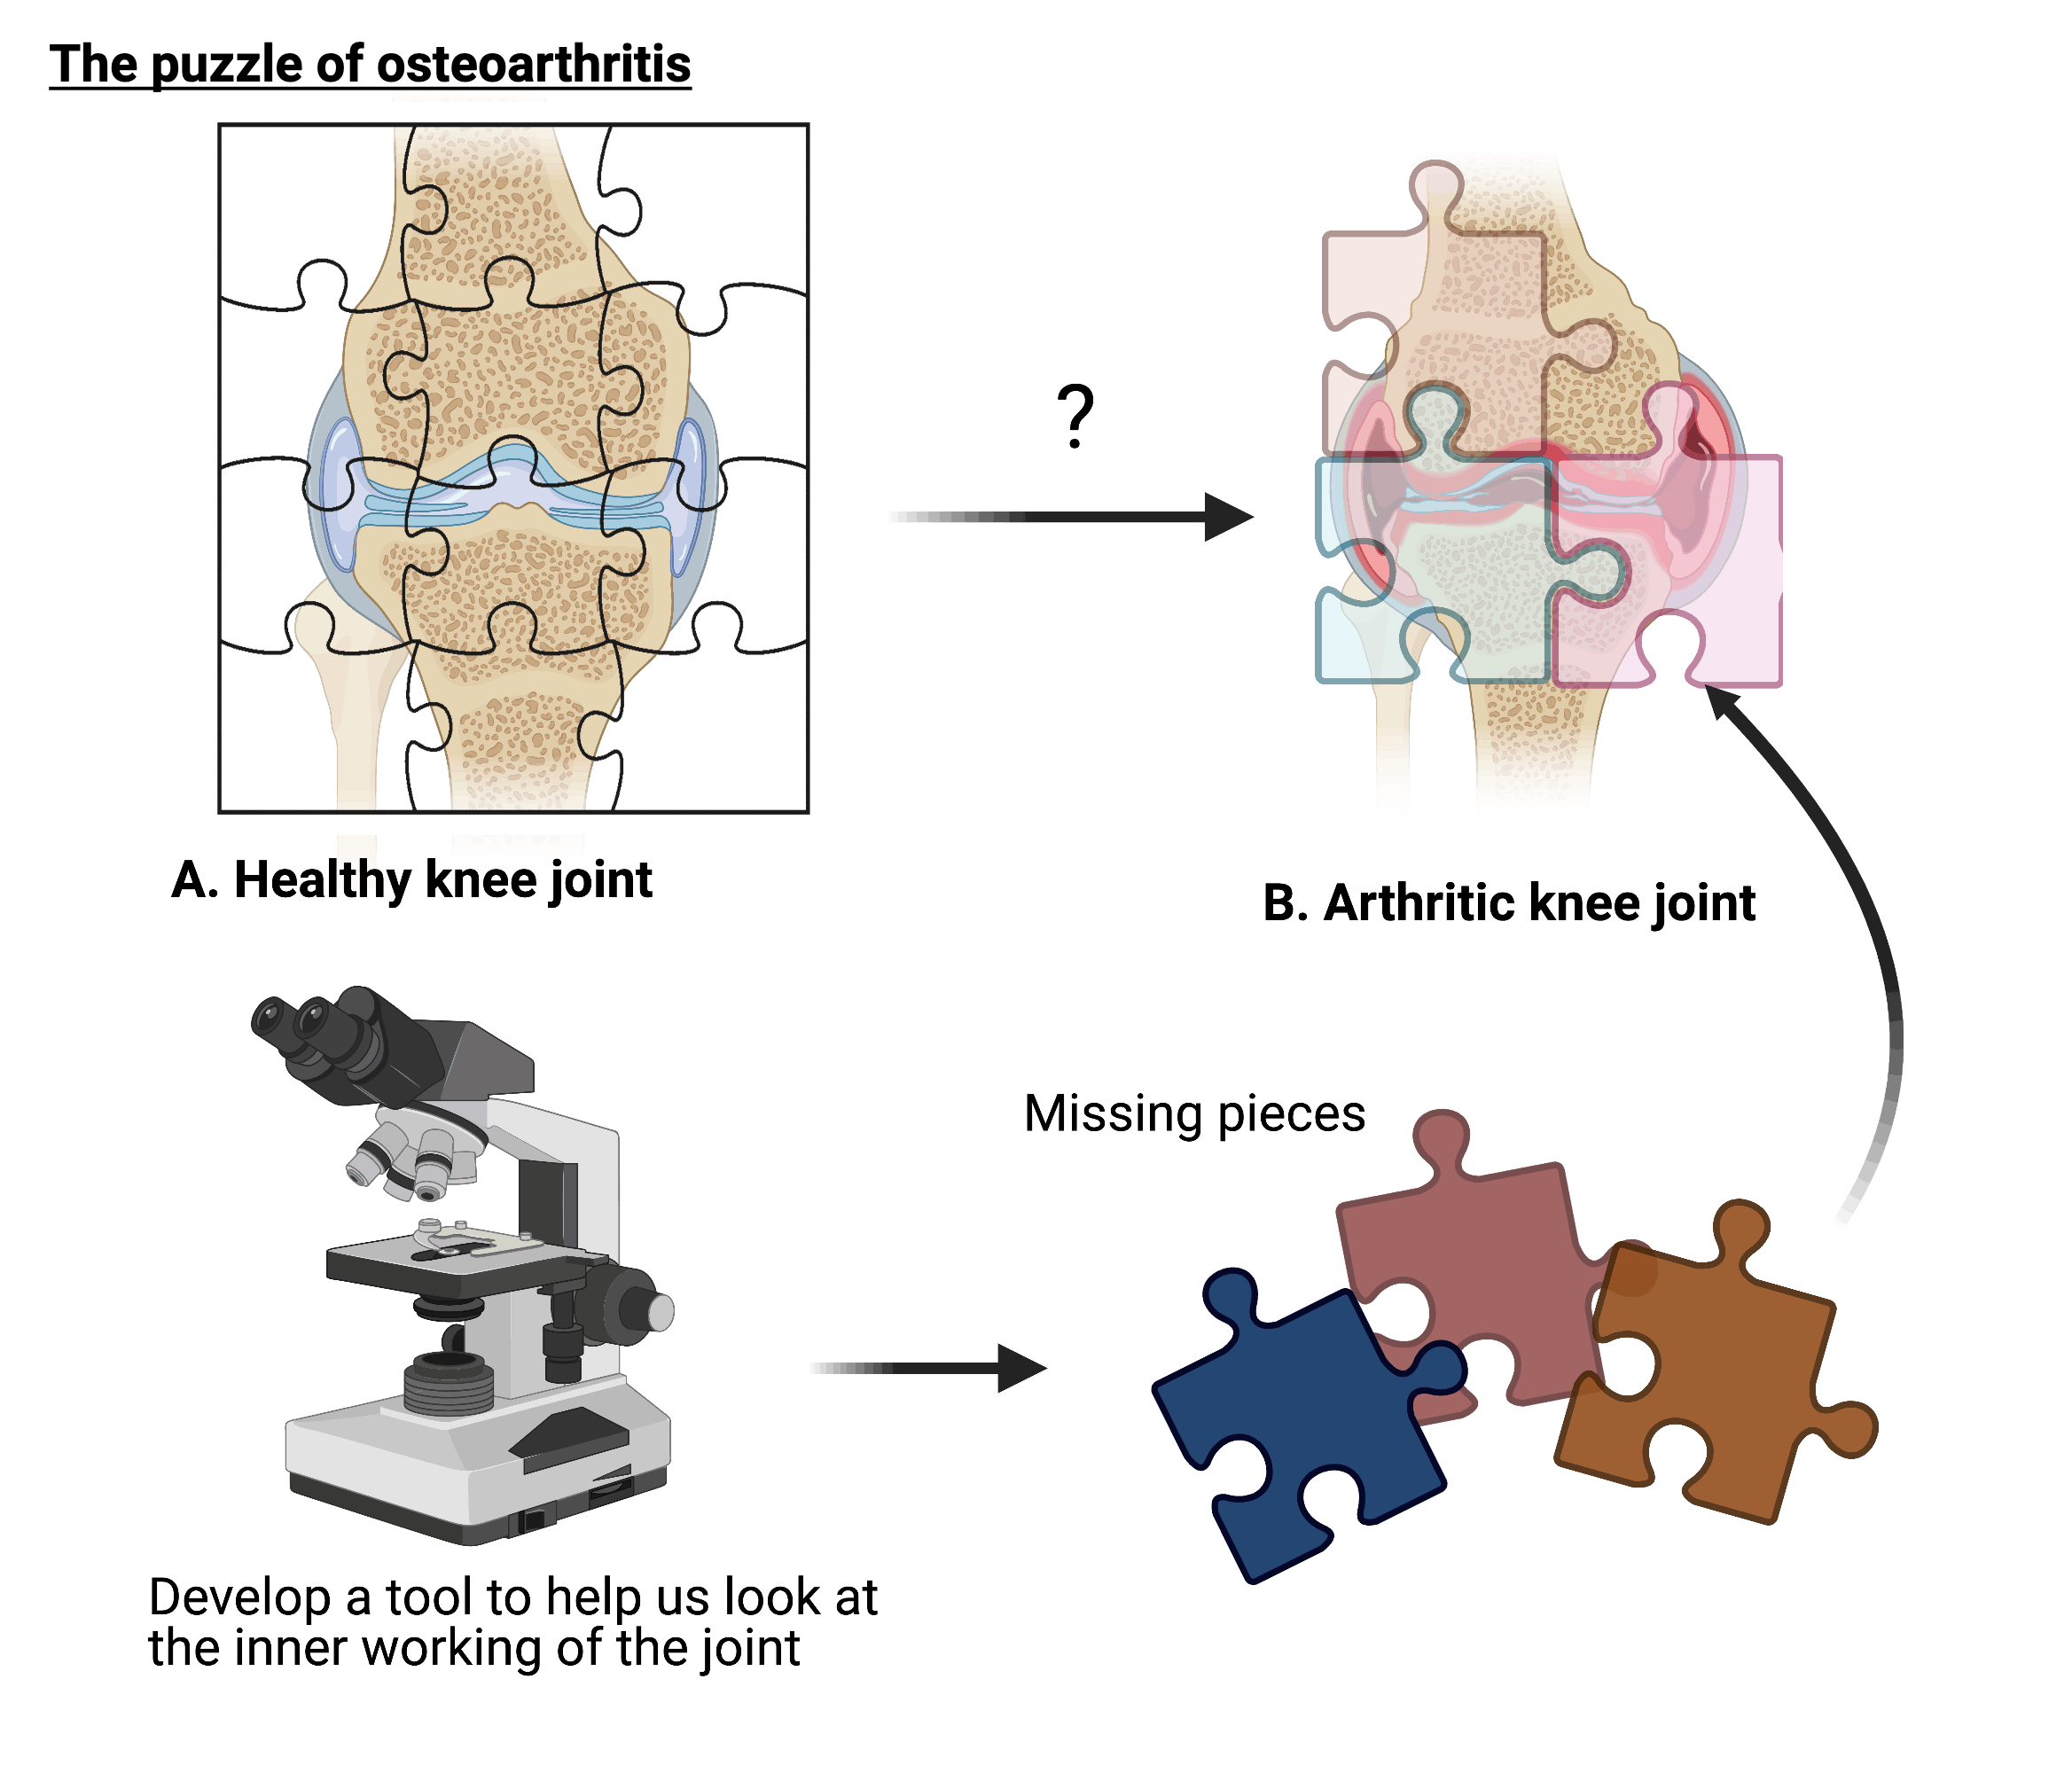 The diagram shows osteoarthritis and the puzzle of a healthy knee joint vs an arthritic knee joint